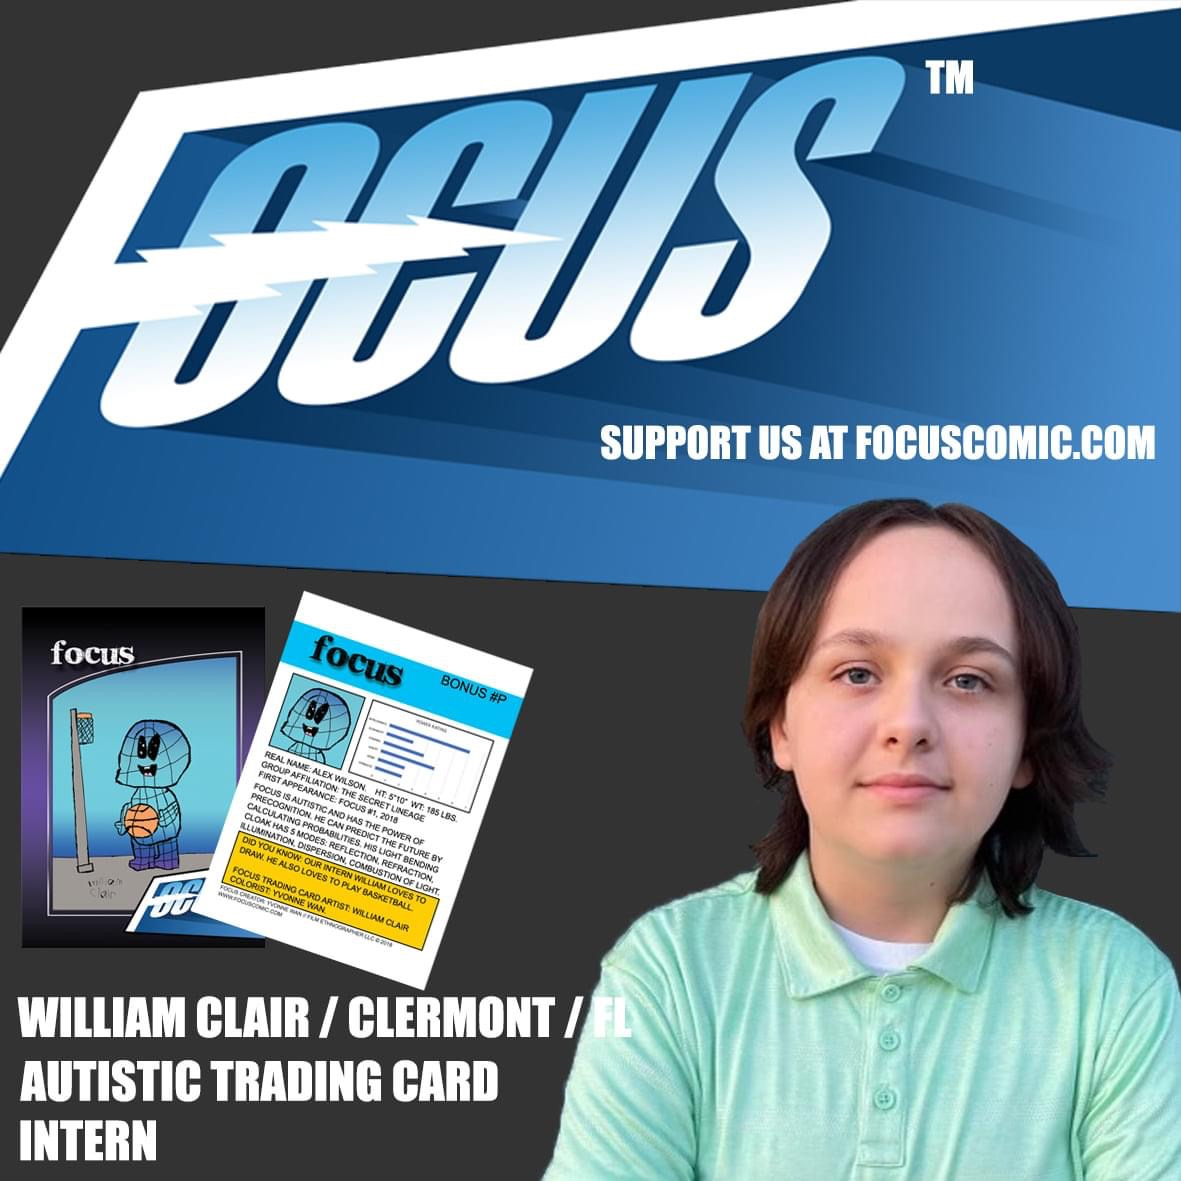 Meet our new autistic Trading Card intern: William Clair, 13 years old